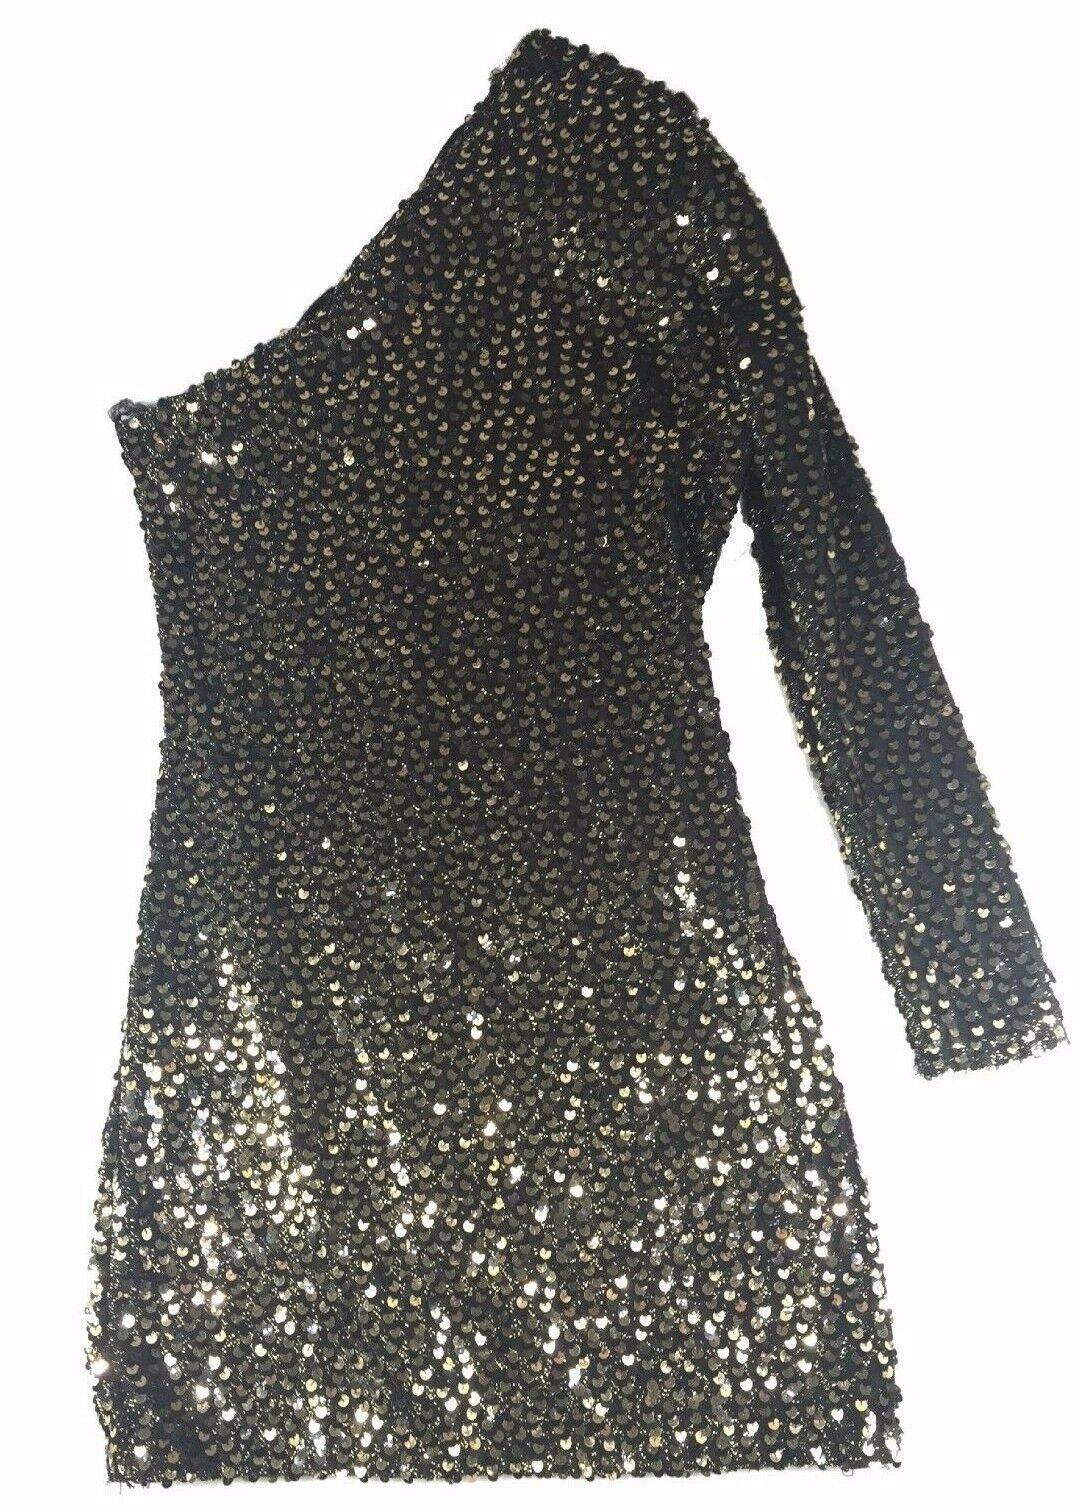 VINTAGE gold Sequin One Arm Sleeve Dress For David Howard Climax Karen Okada 7 8